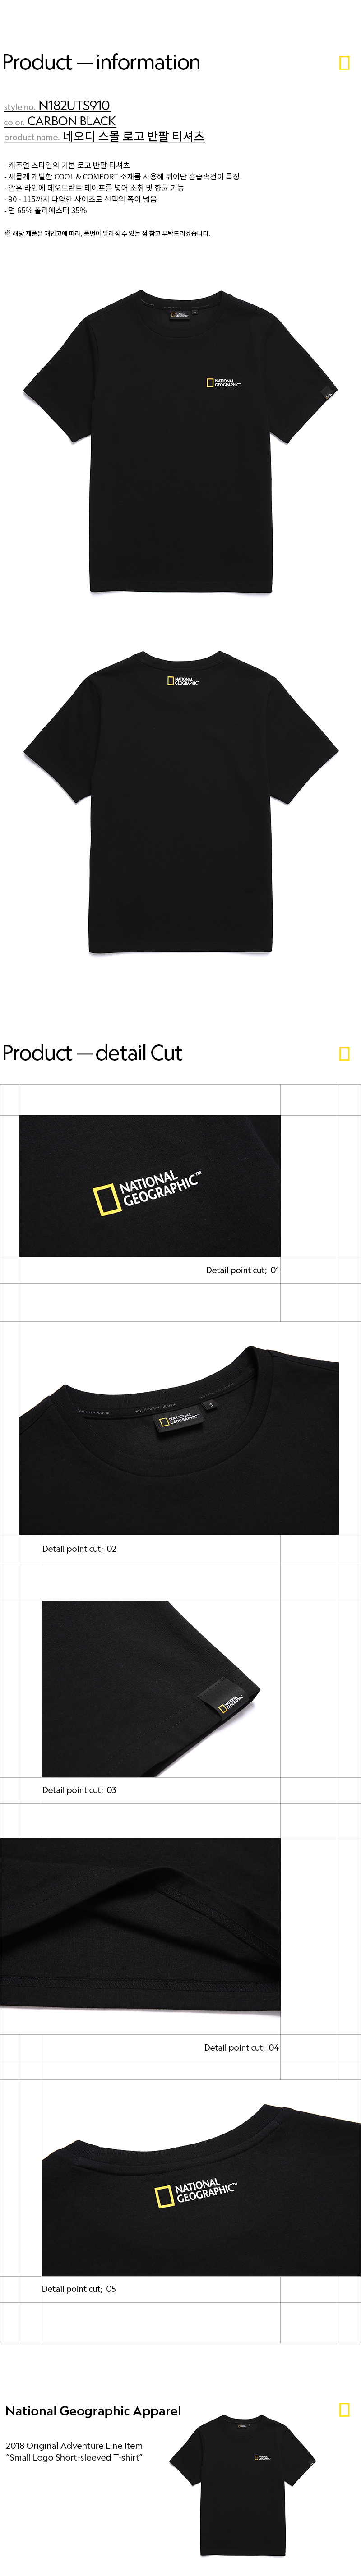 National Geographic T Shirt Adventure